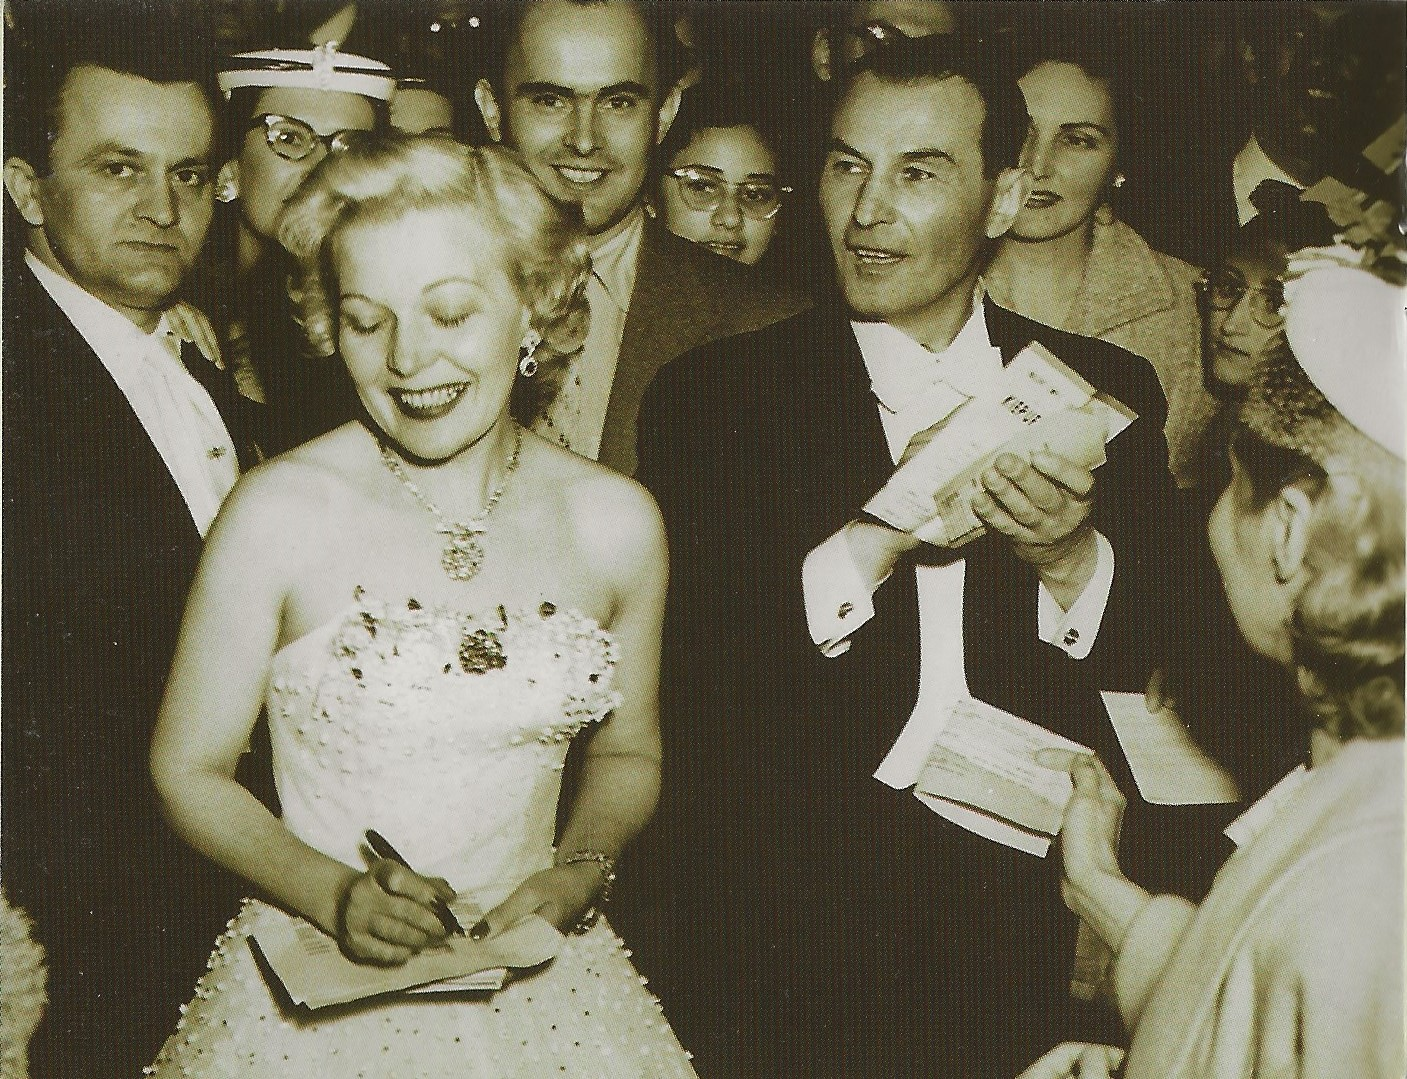 Marta Eggerth and Jan Kiepura giving autographs to fans in Detroit after a concert in 1954. (Photo: exil.arte)